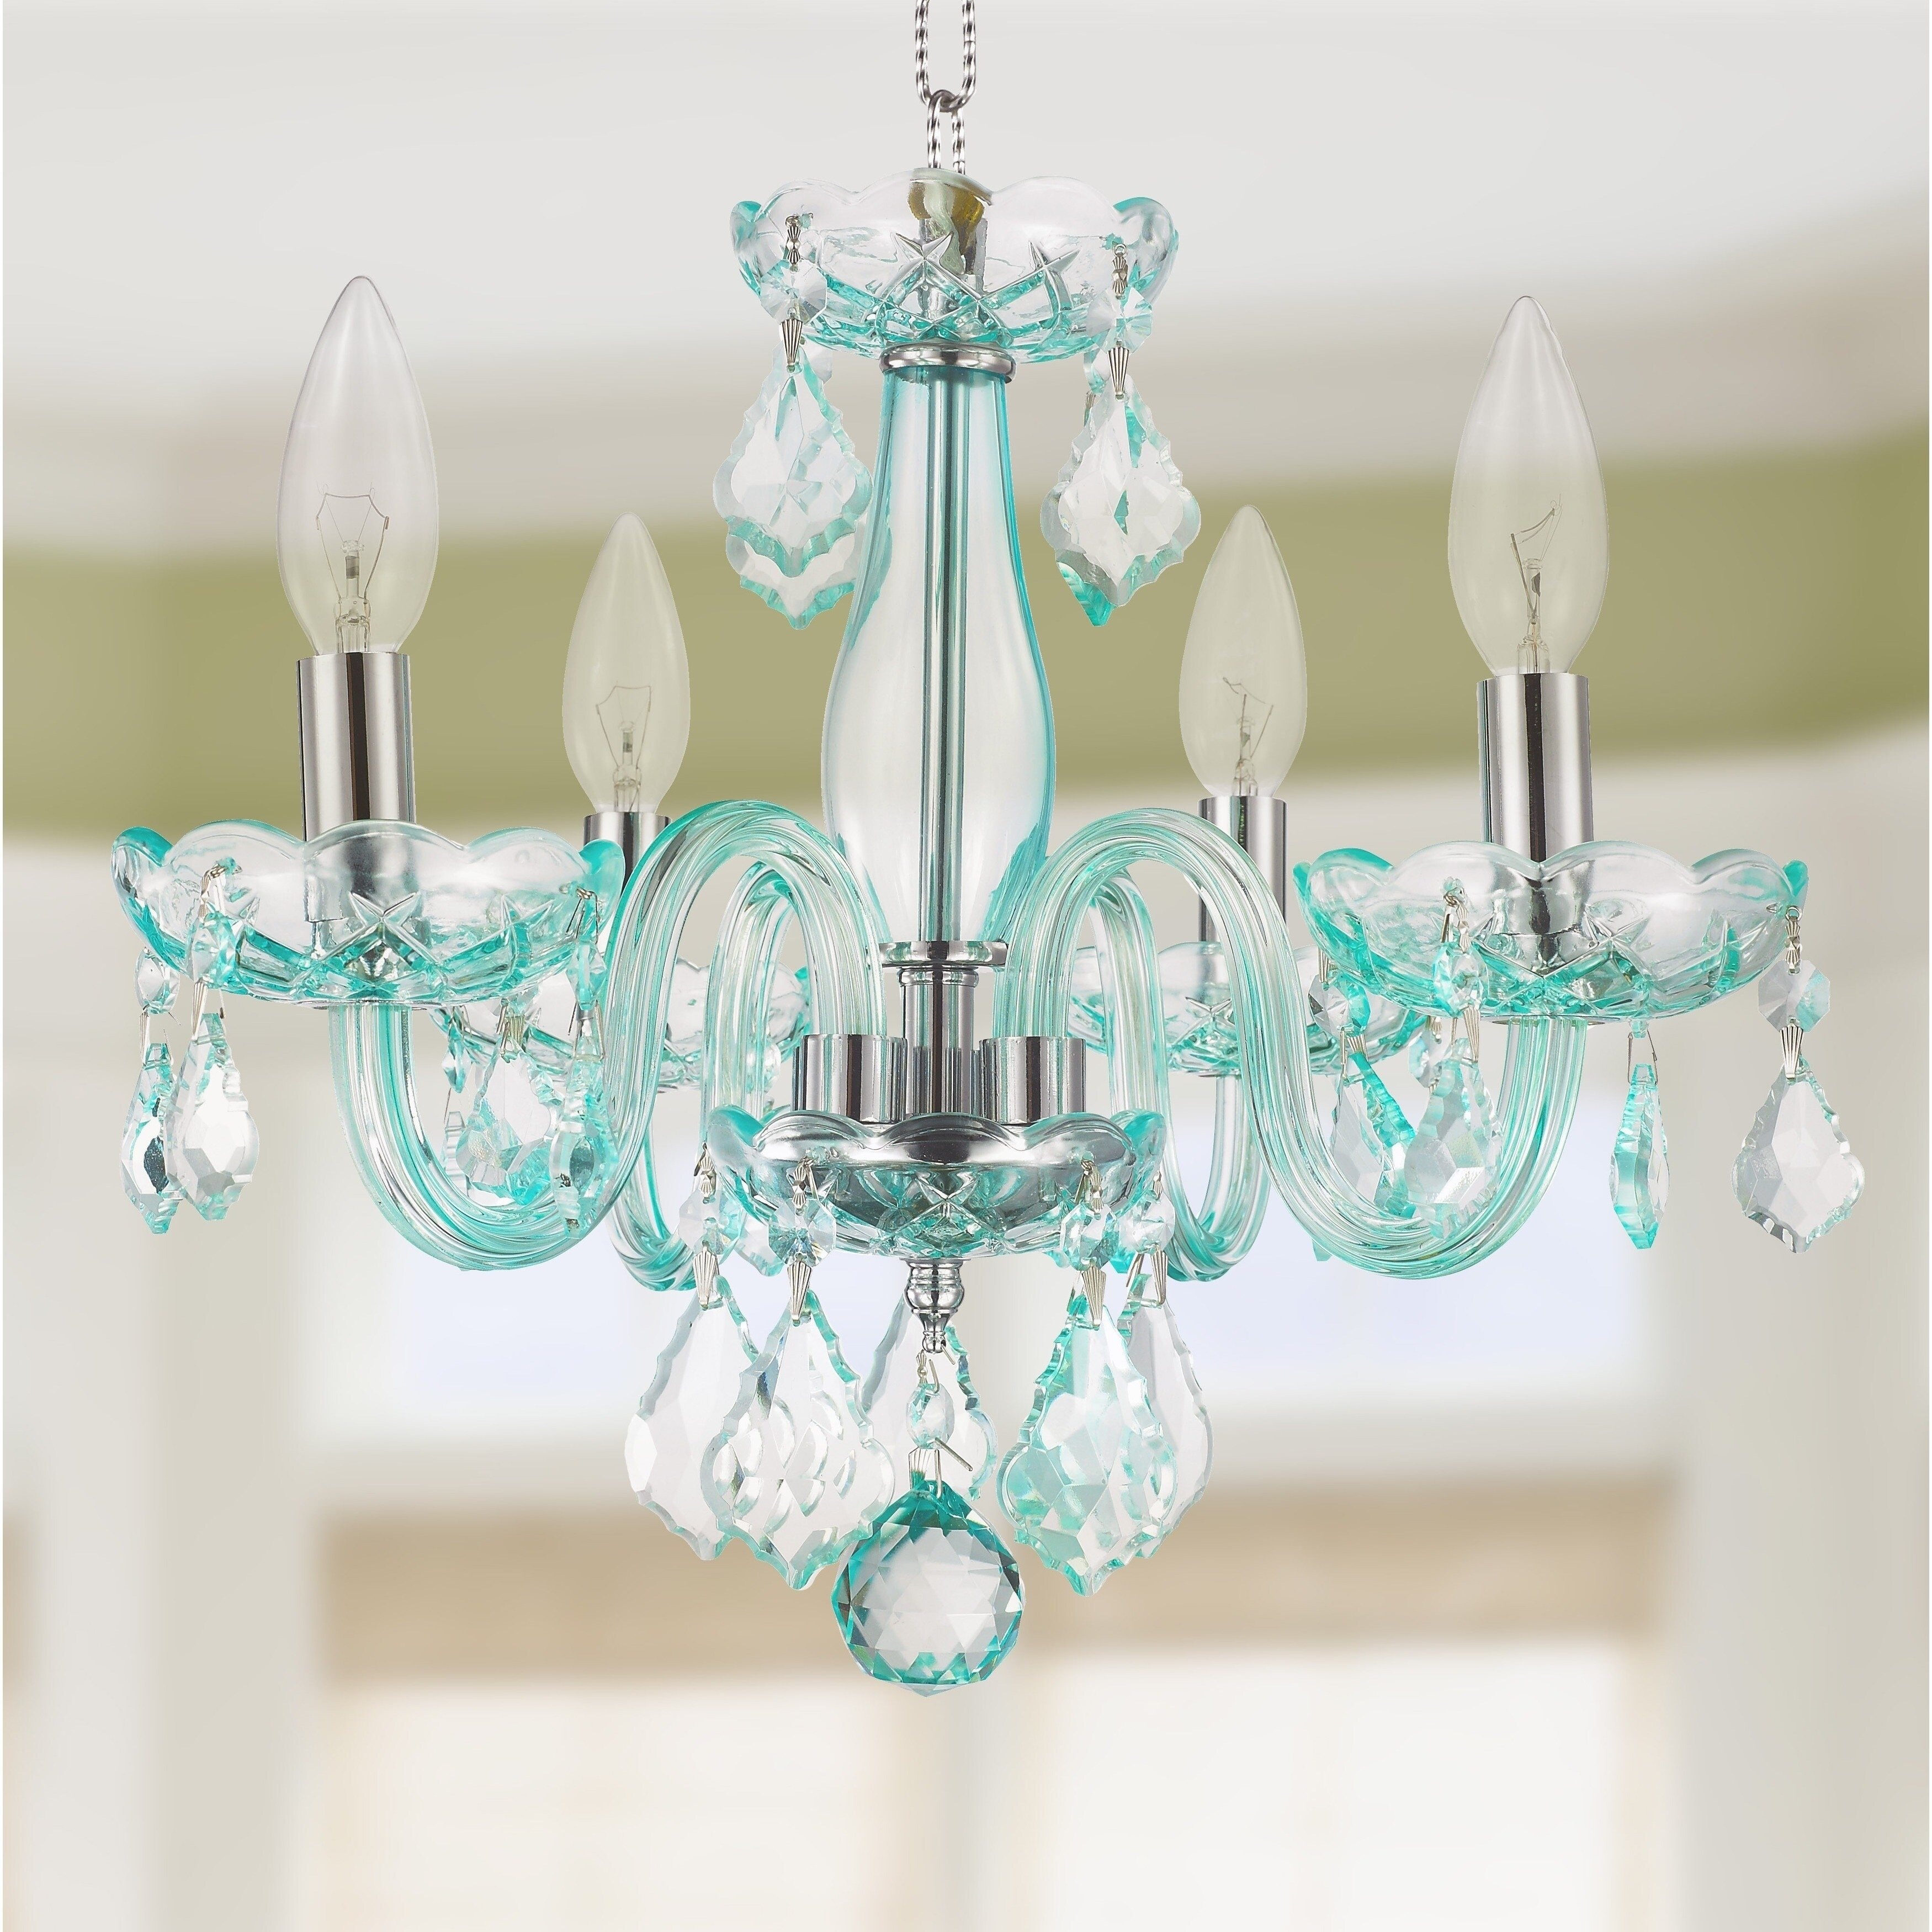 reputable site 7cb9d 1f95d Kids Room Glam 4-light 16 inch Turquoise Blue Crystal Chandelier